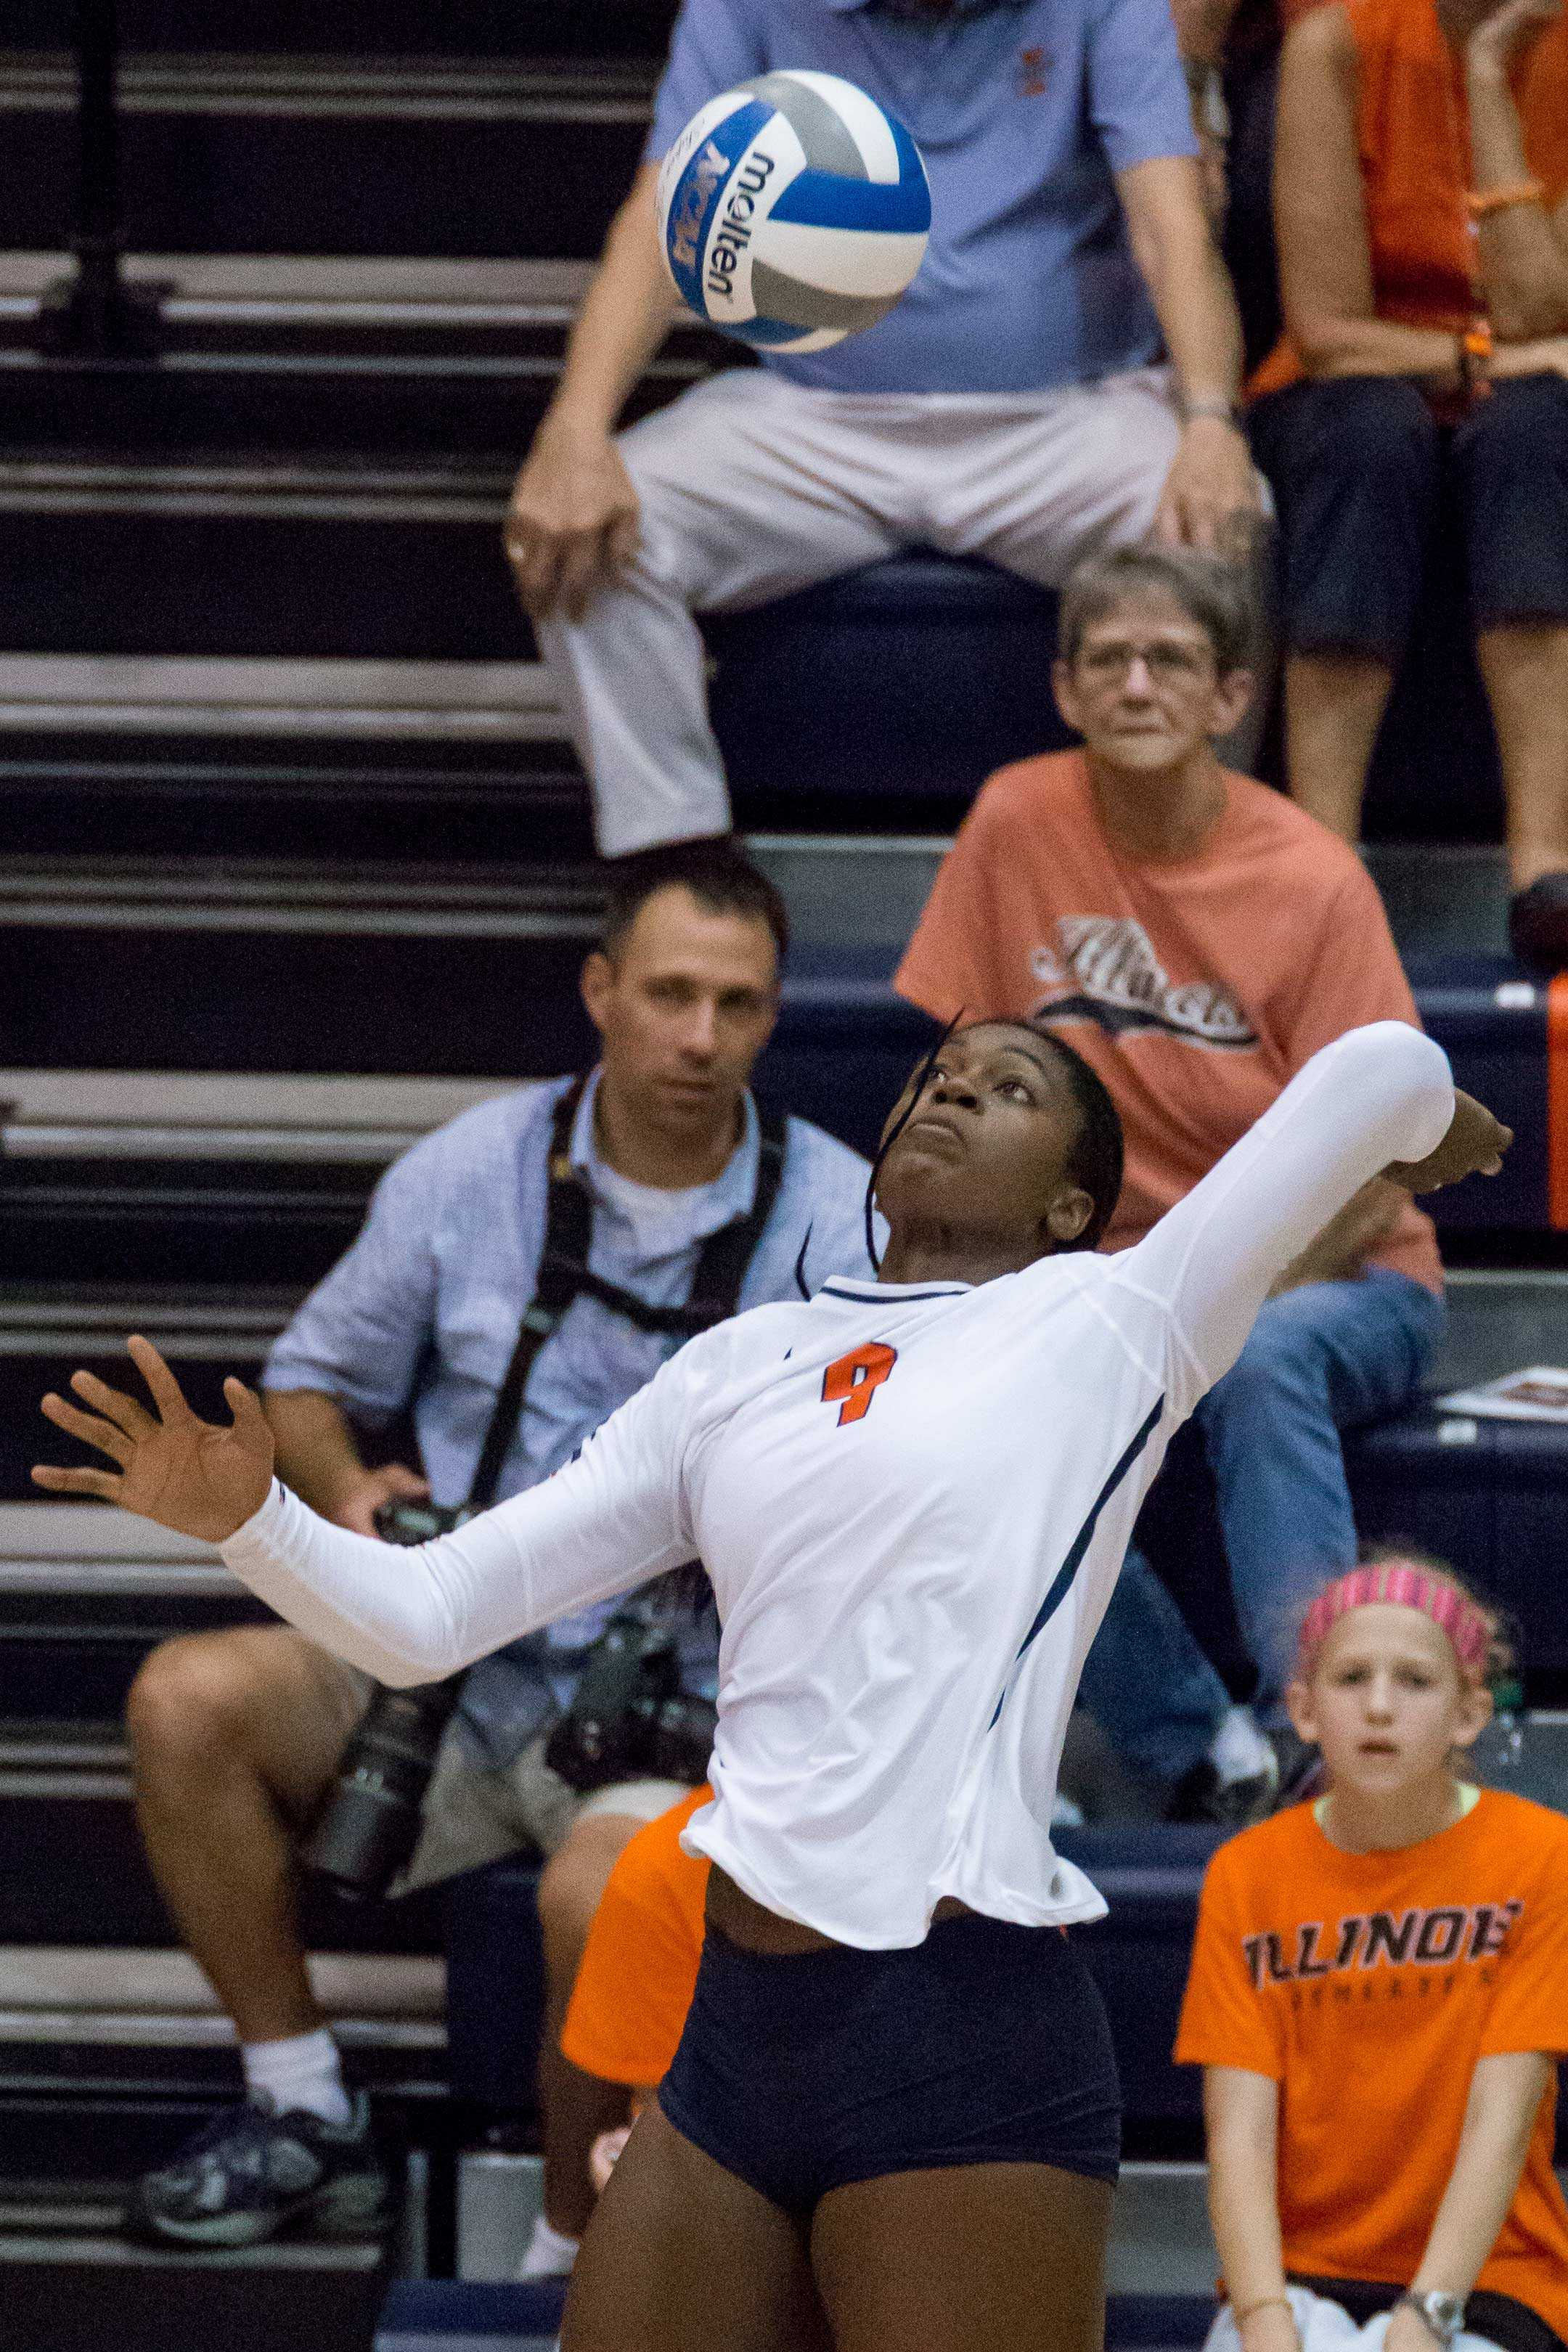 Illinois opposite hitter Naya Crittenden gets ready to spike the ball during the match against Arkansas at Huff Hall on Friday, August 26. The Illini won 3-0.